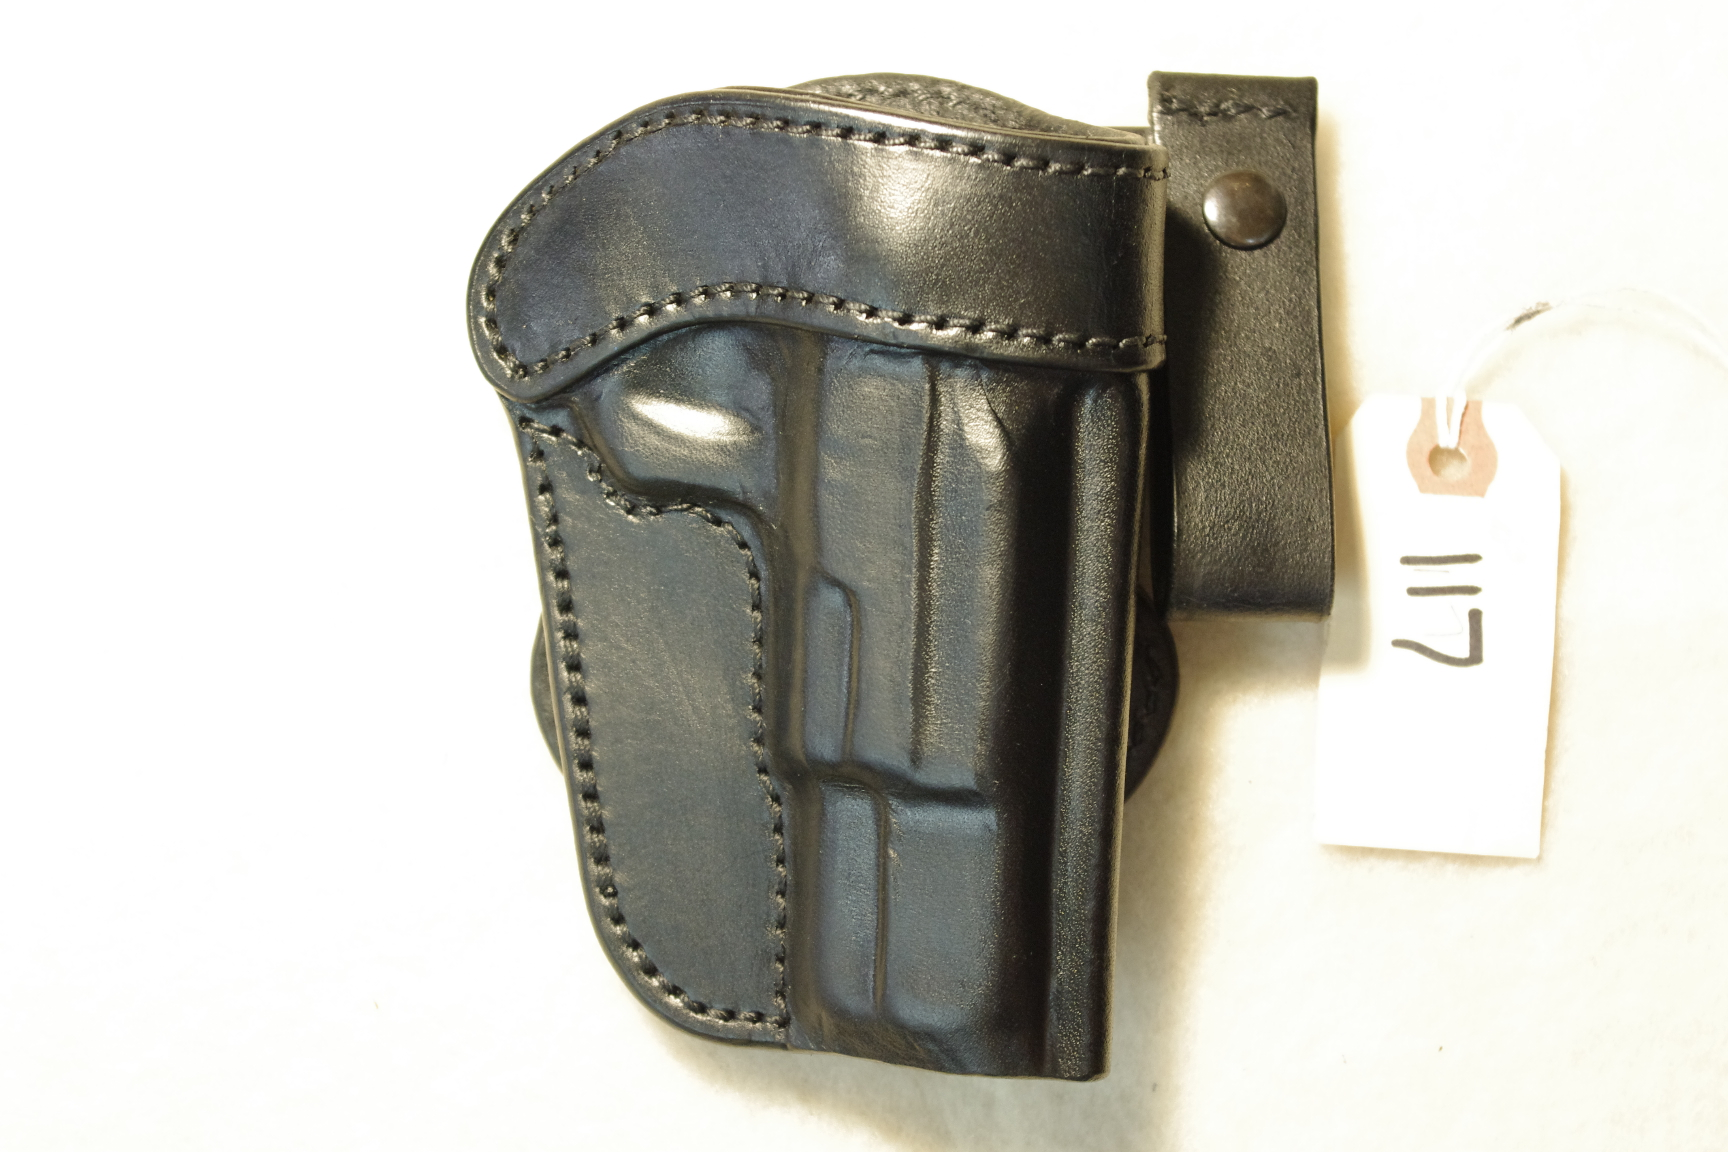 RH LEC Paddle Holster for CZ 75B (sold)